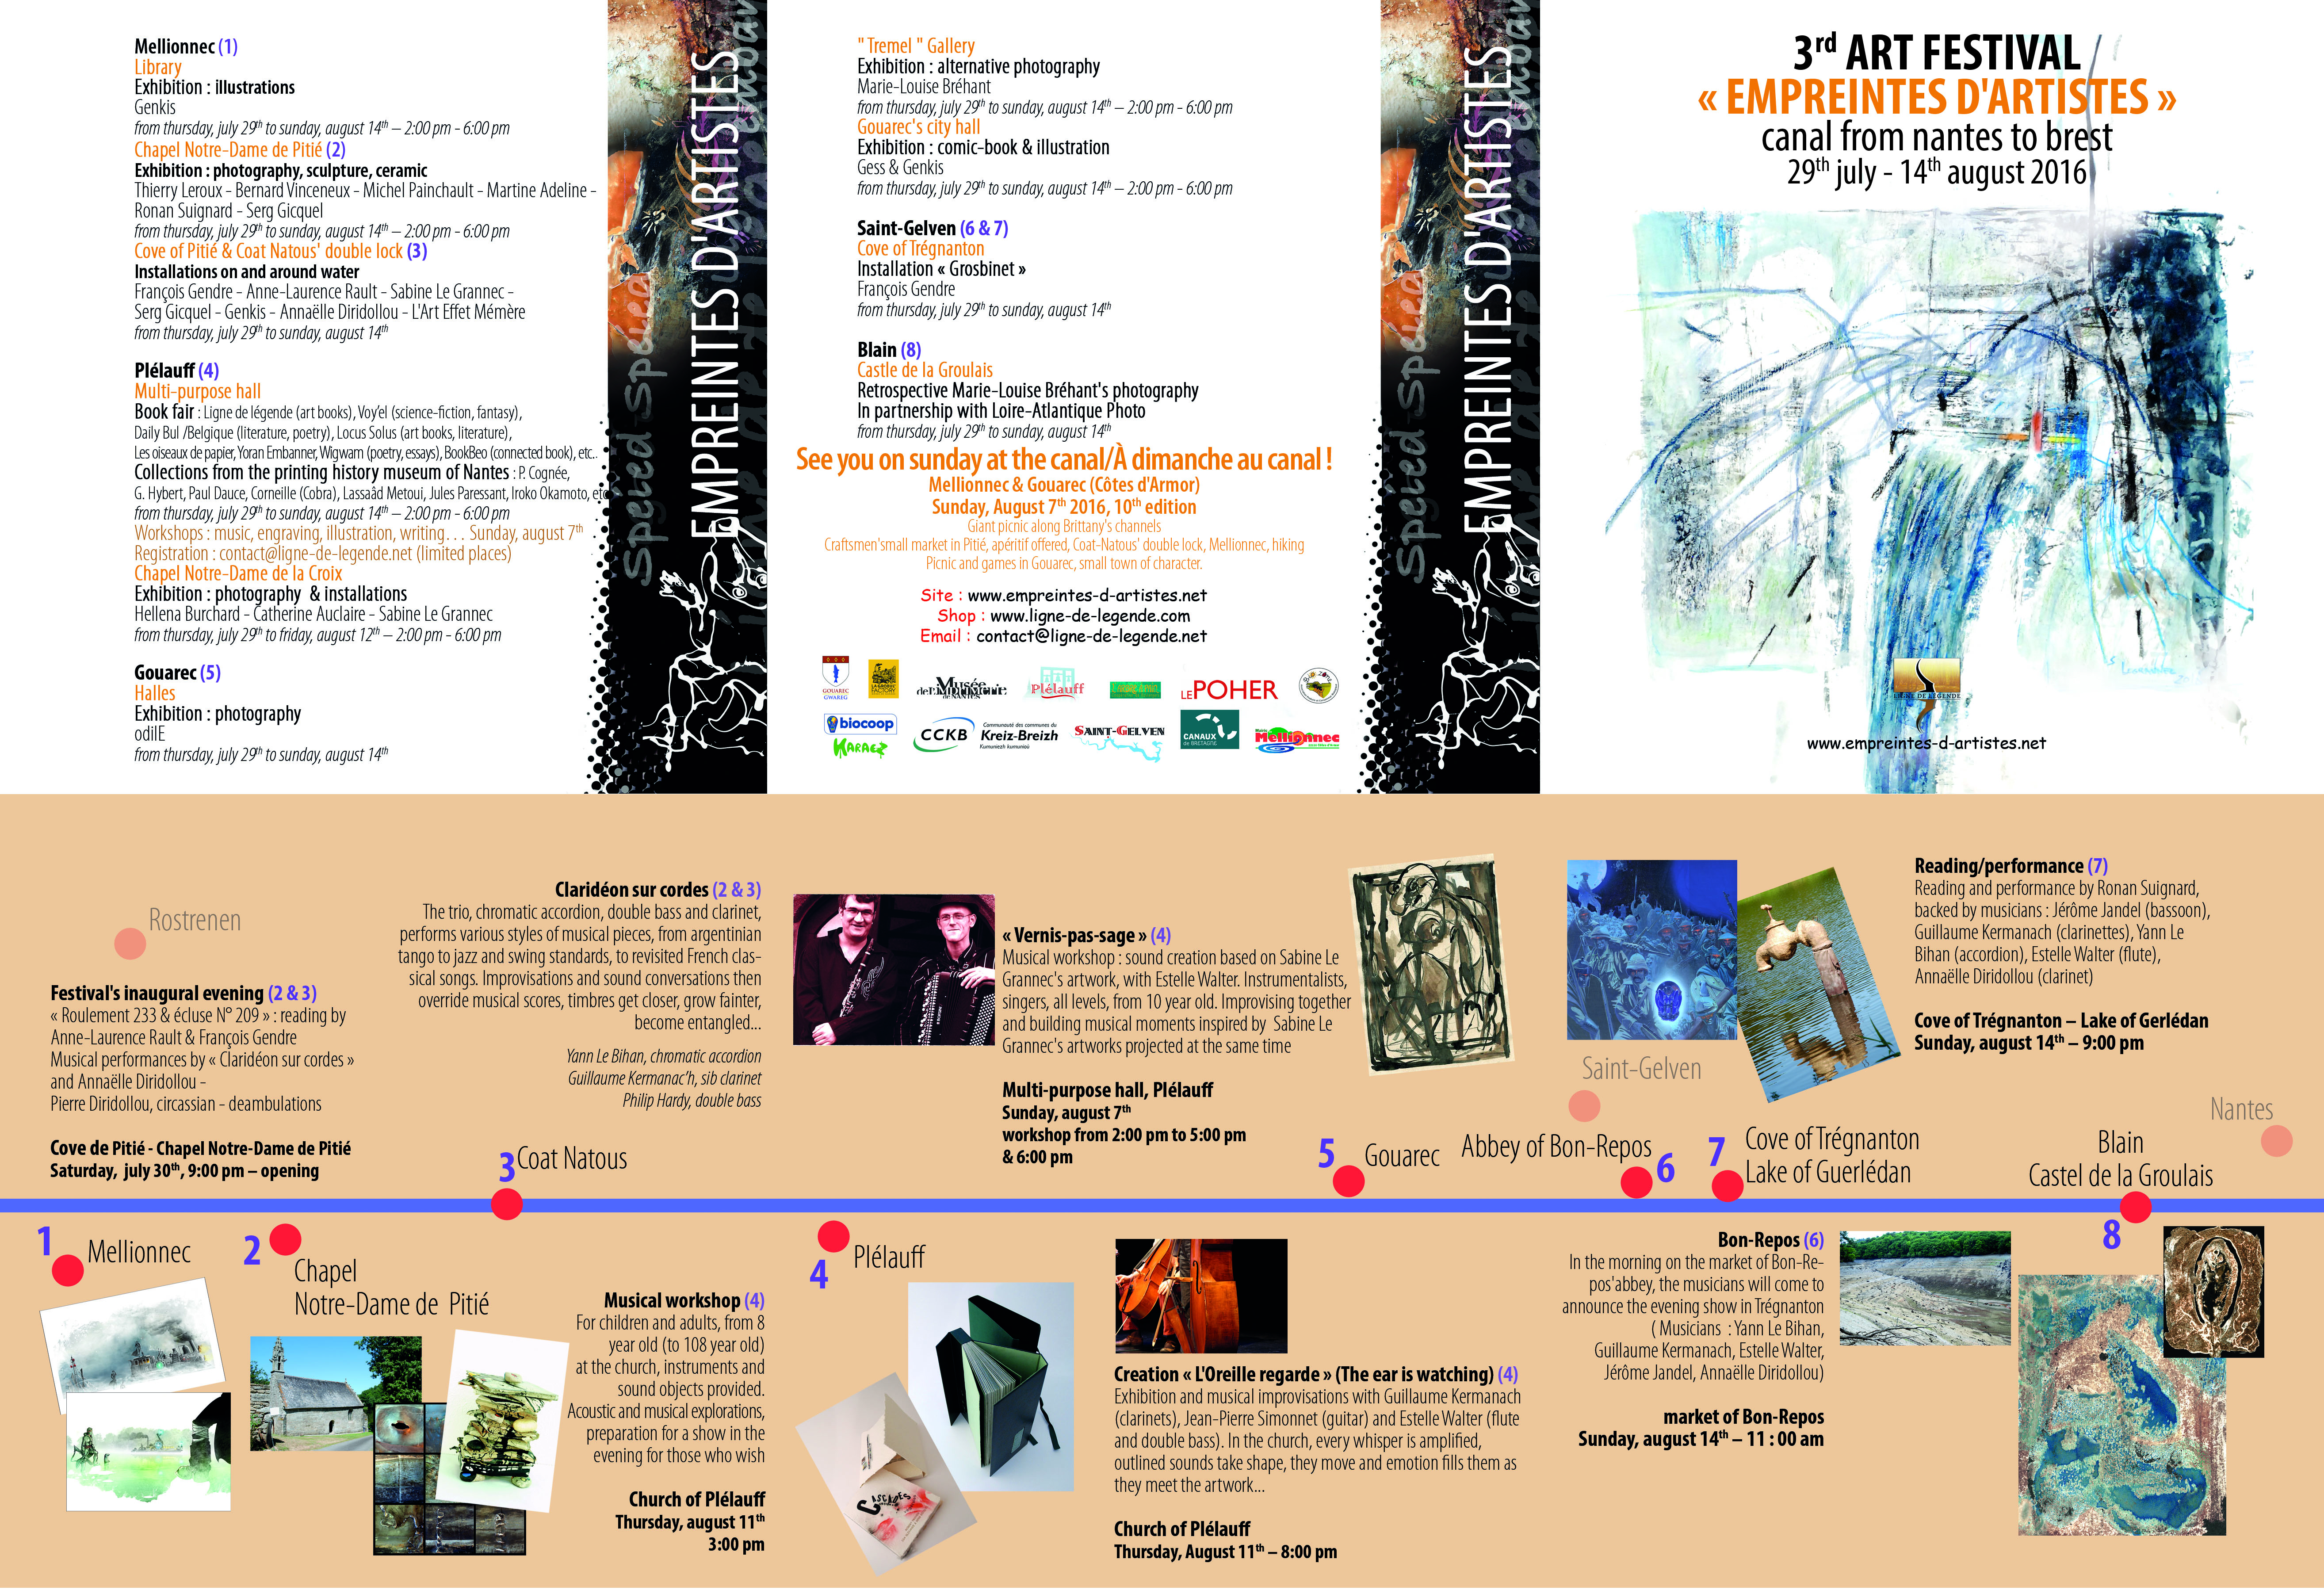 This is the programme for the Art Festival Empreintes d'artistes 2016 in English